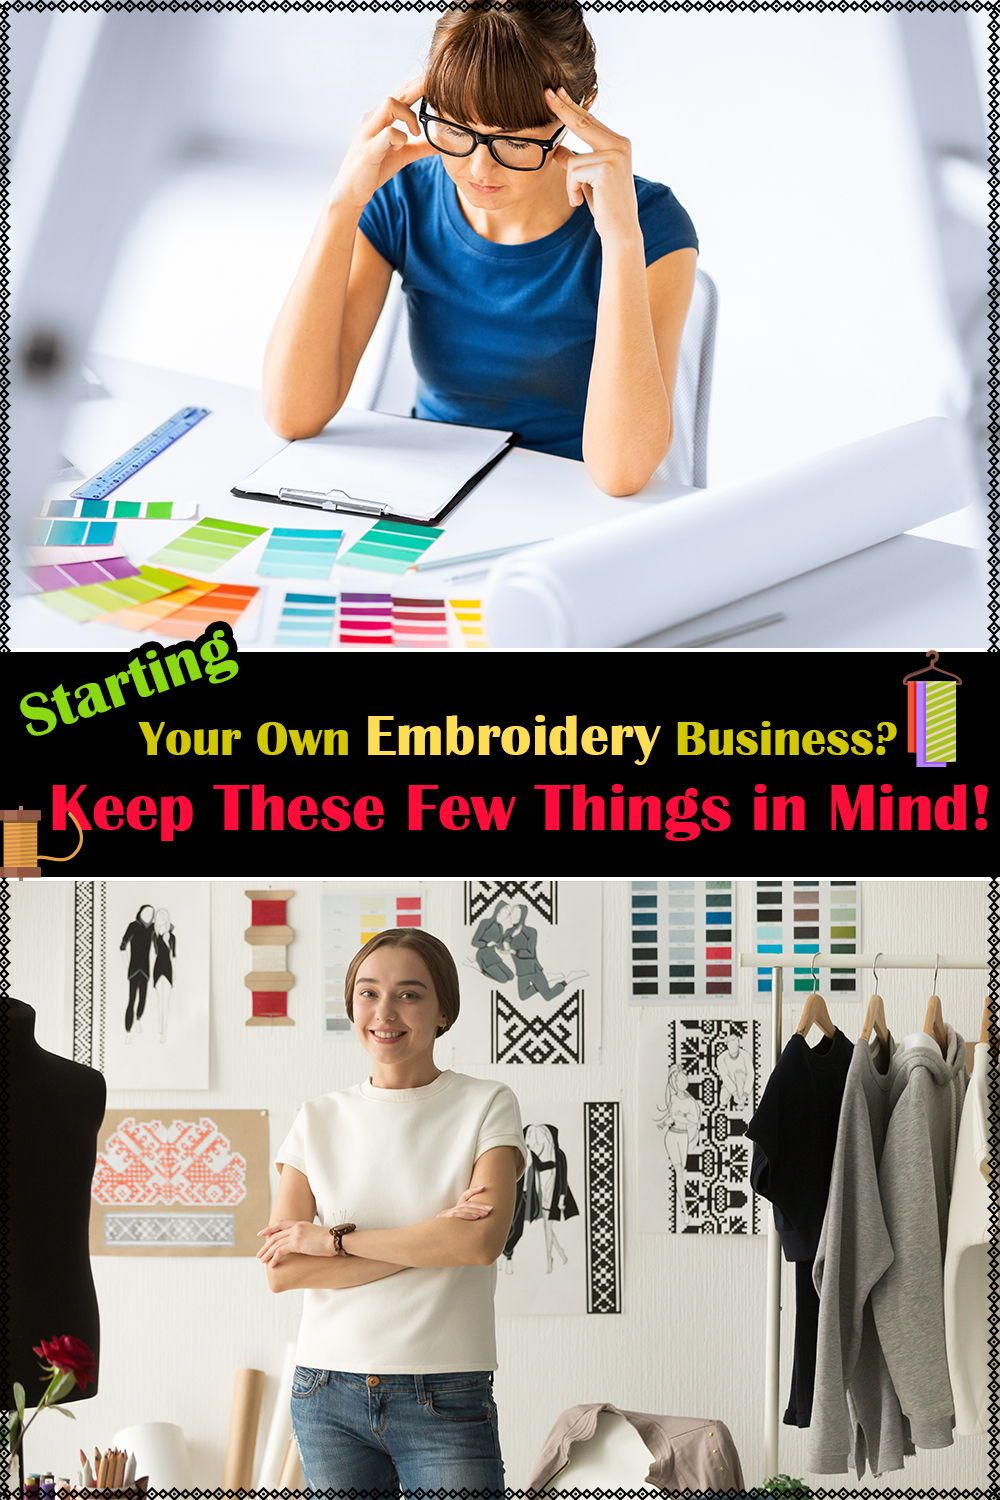 Things to Remember When Starting Your Own Embroidery